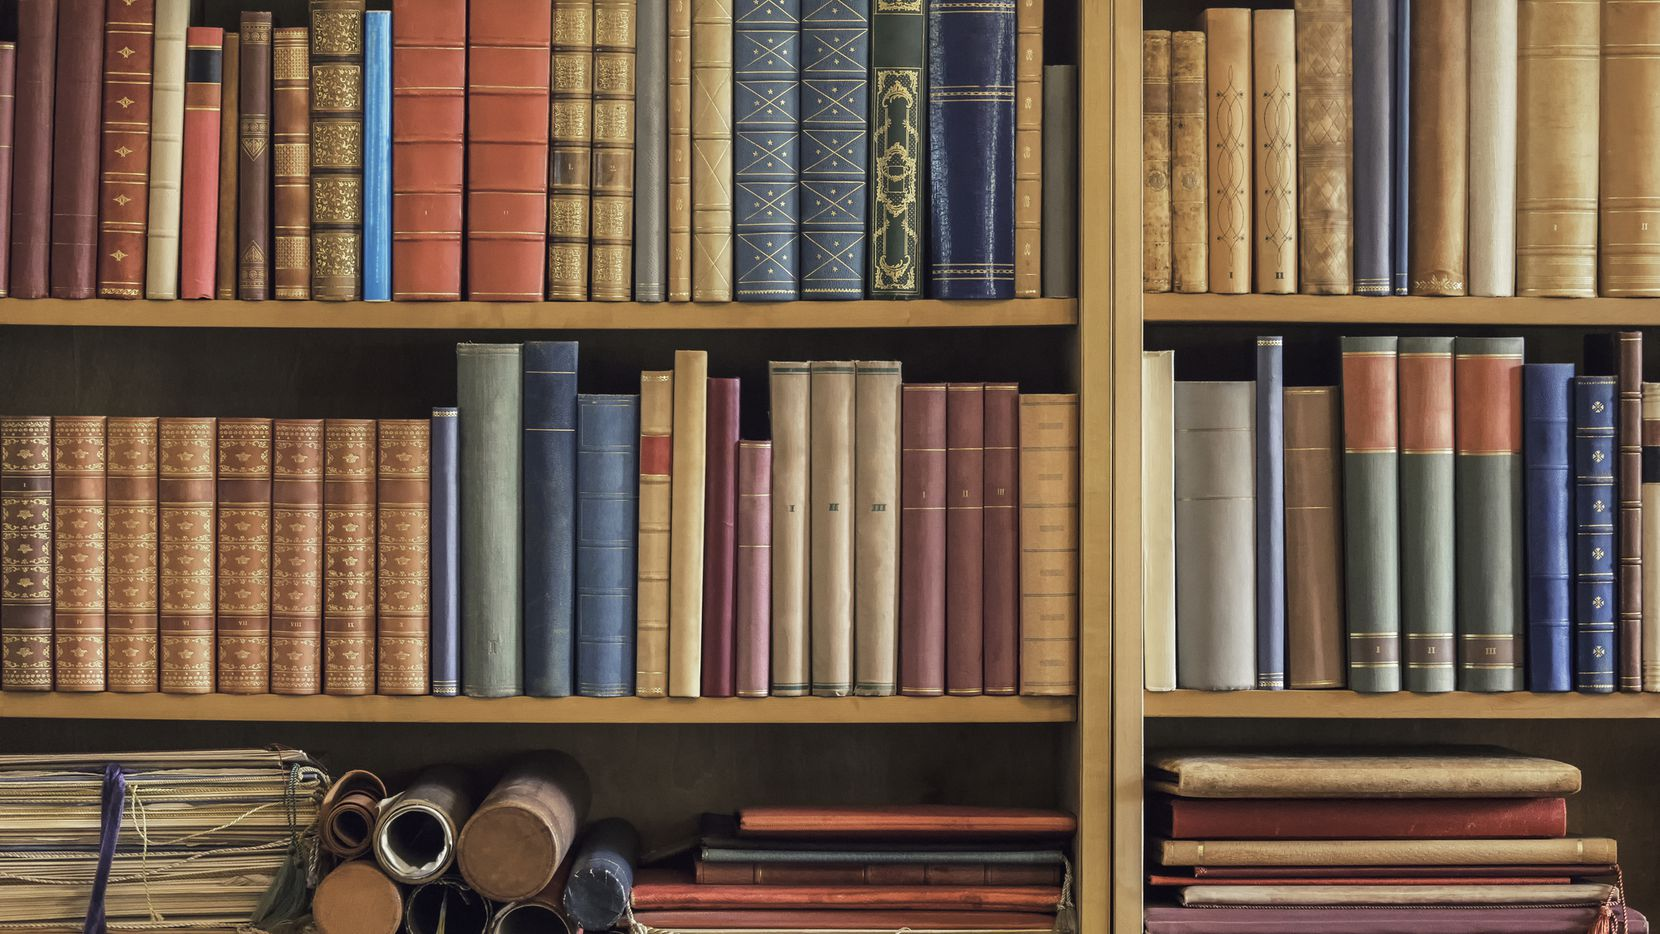 A collection of old books and documents in a shelf.